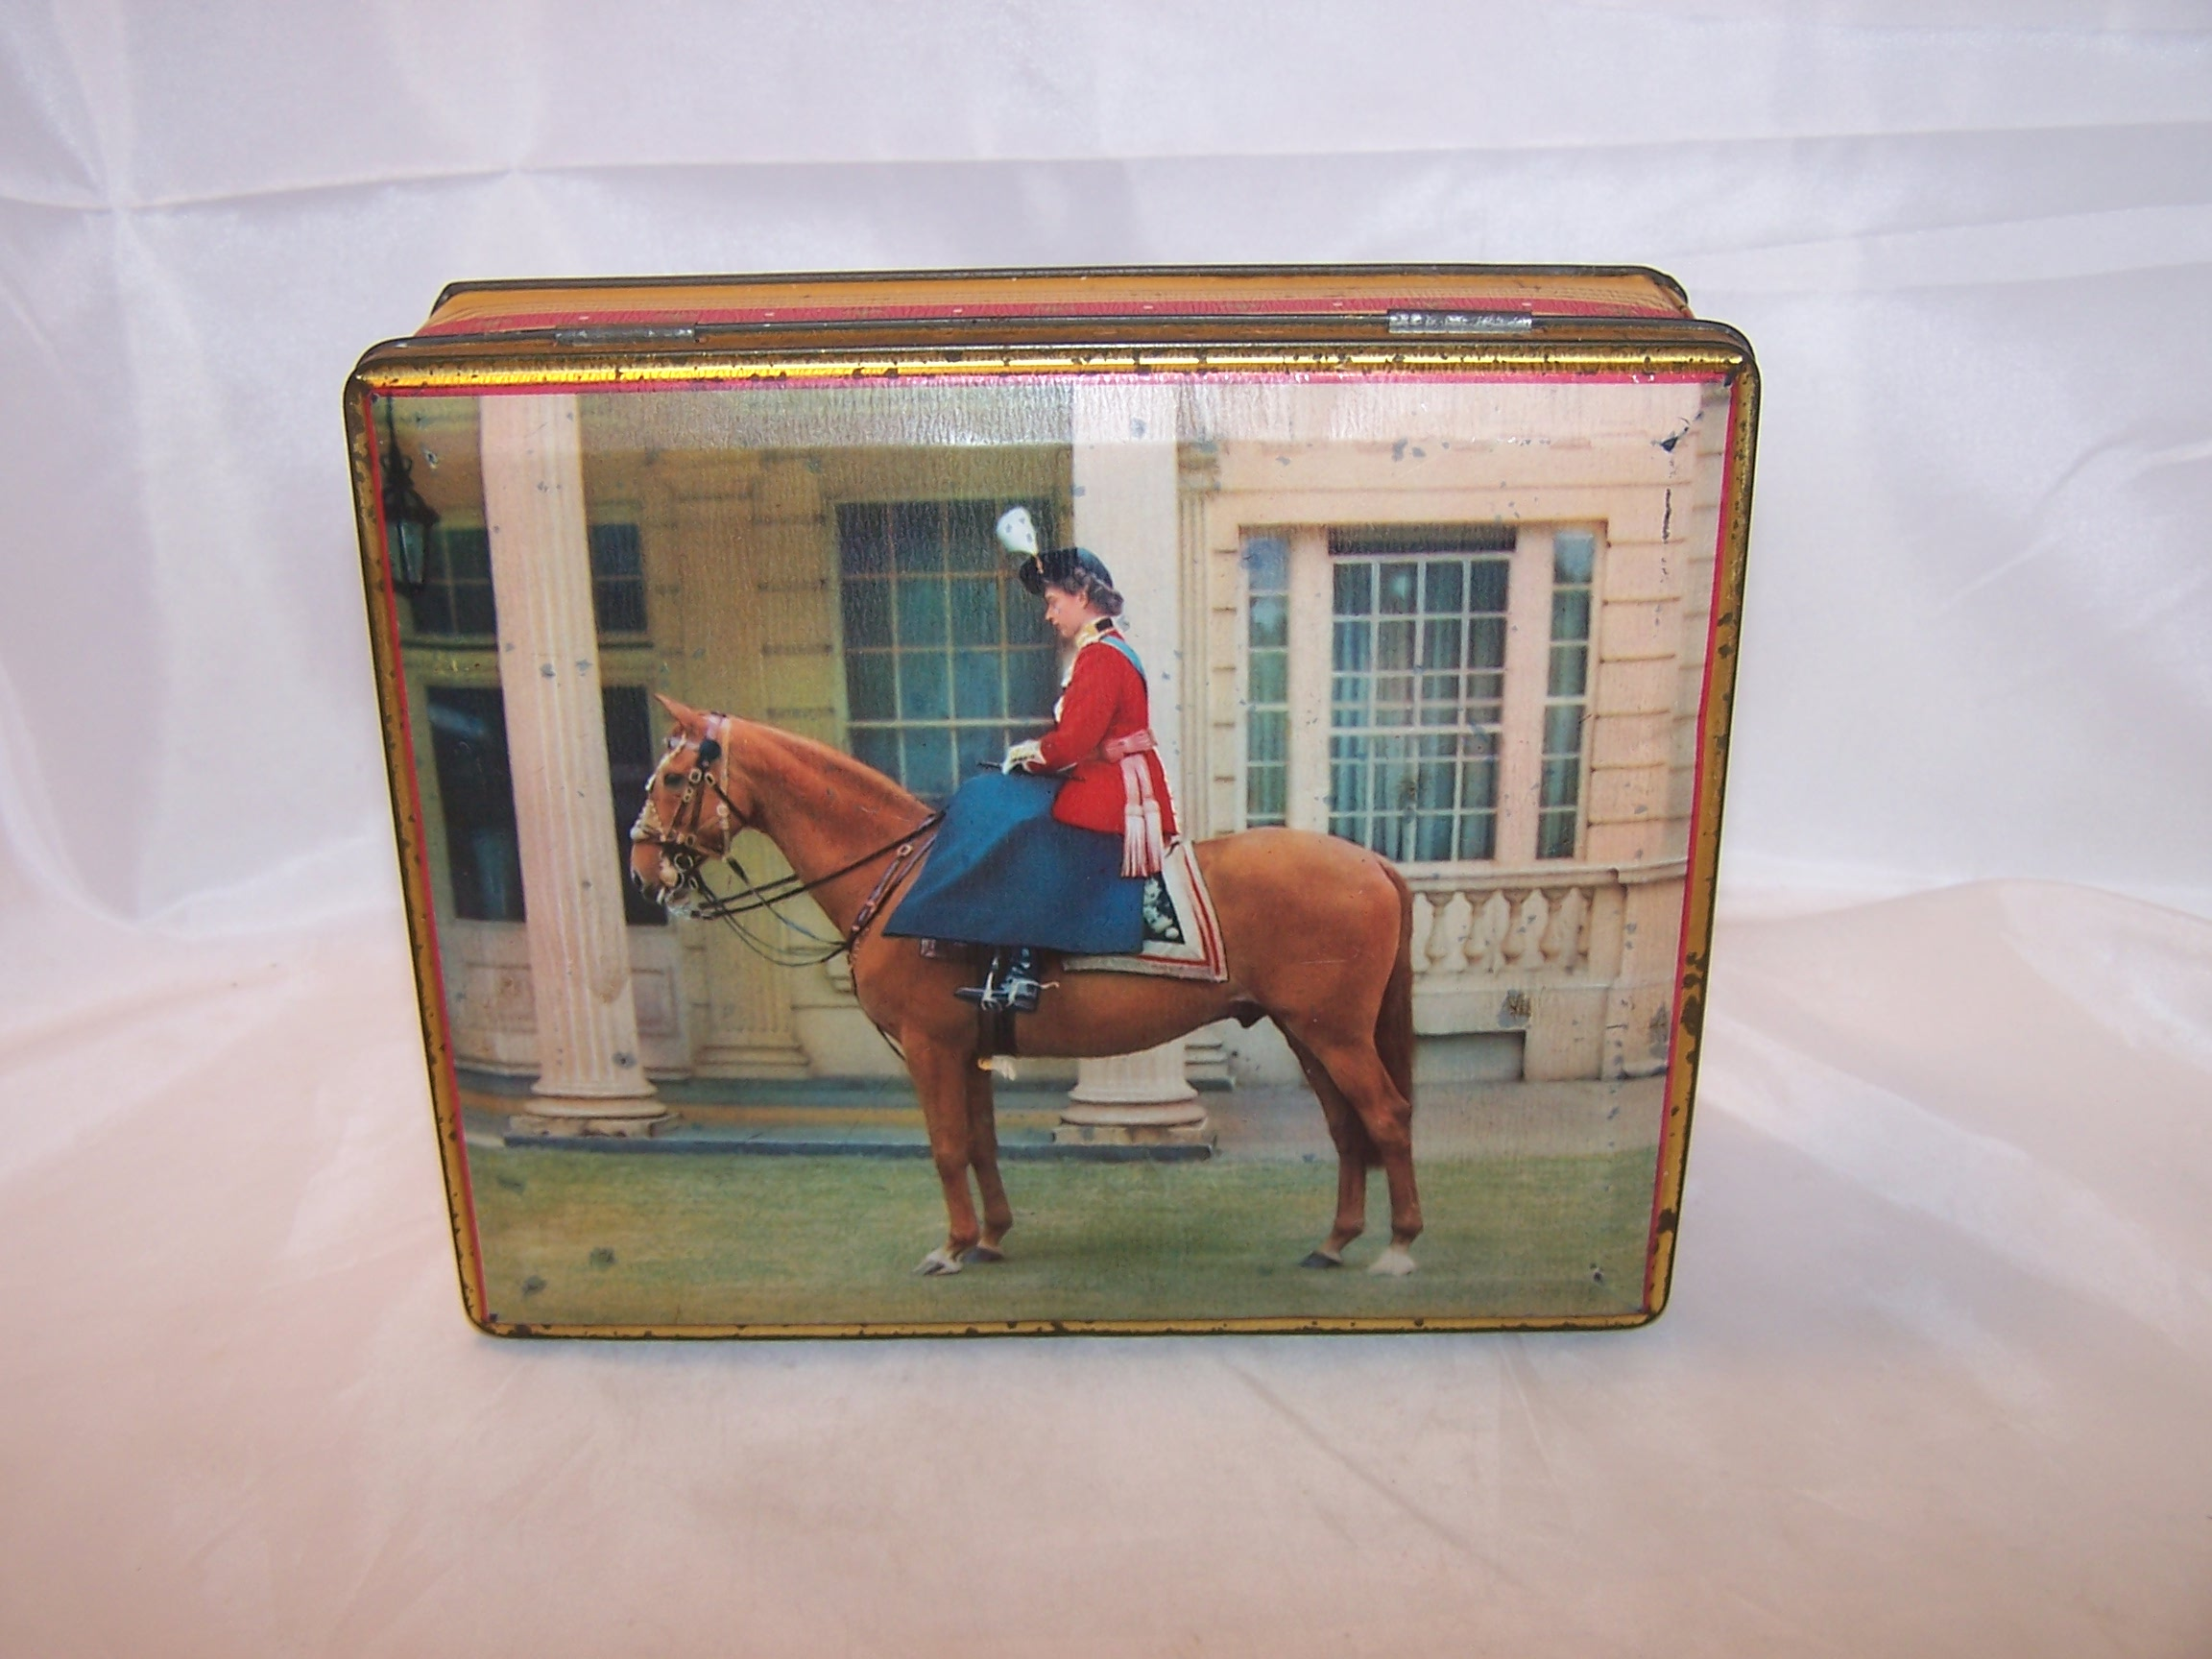 Queen Elizabeth Tin Hinged Box, Sharp and Sons, Vintage